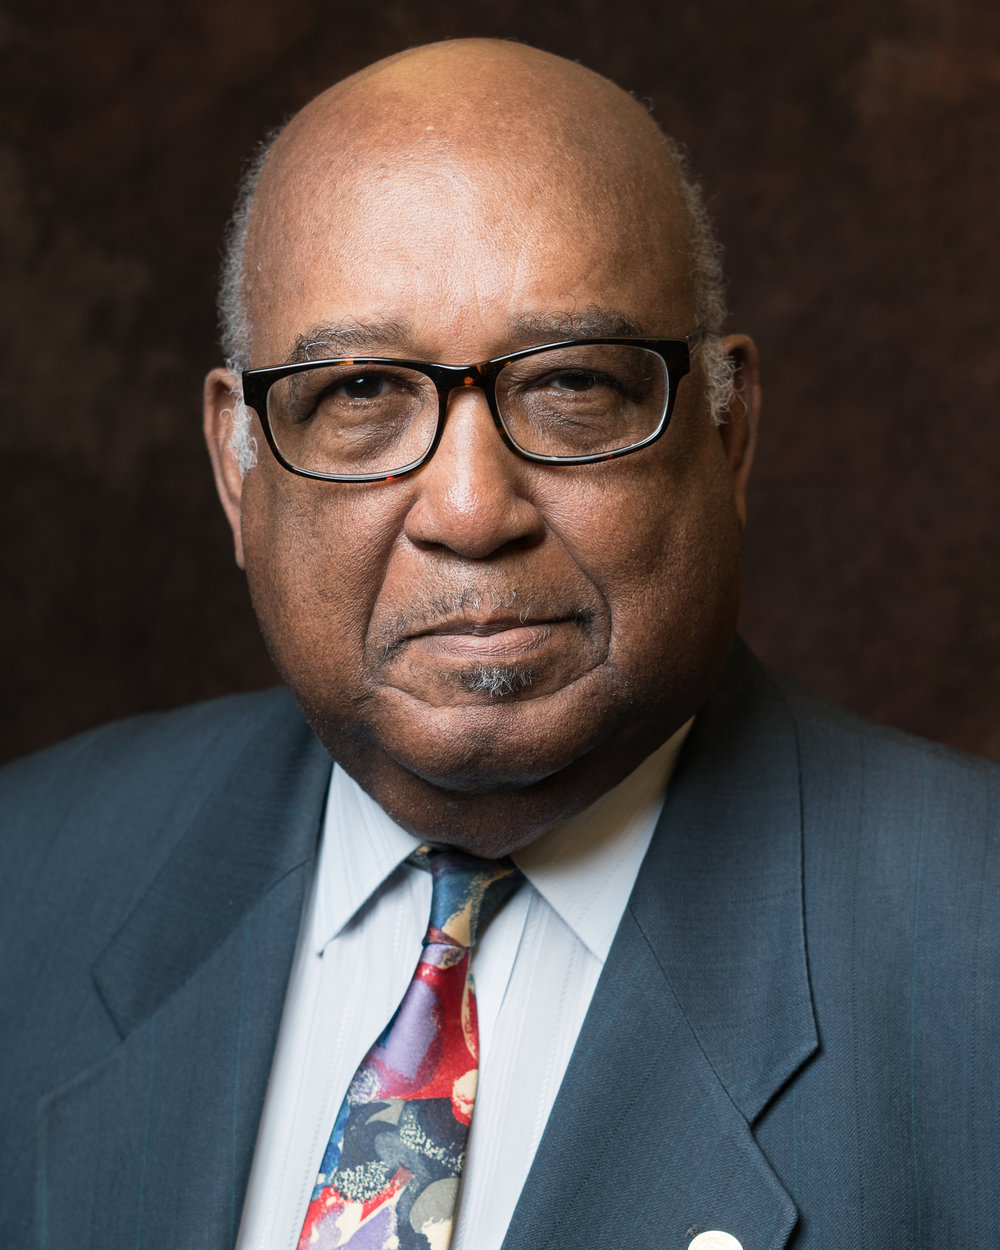 Dr. Gaston J. Franklyn